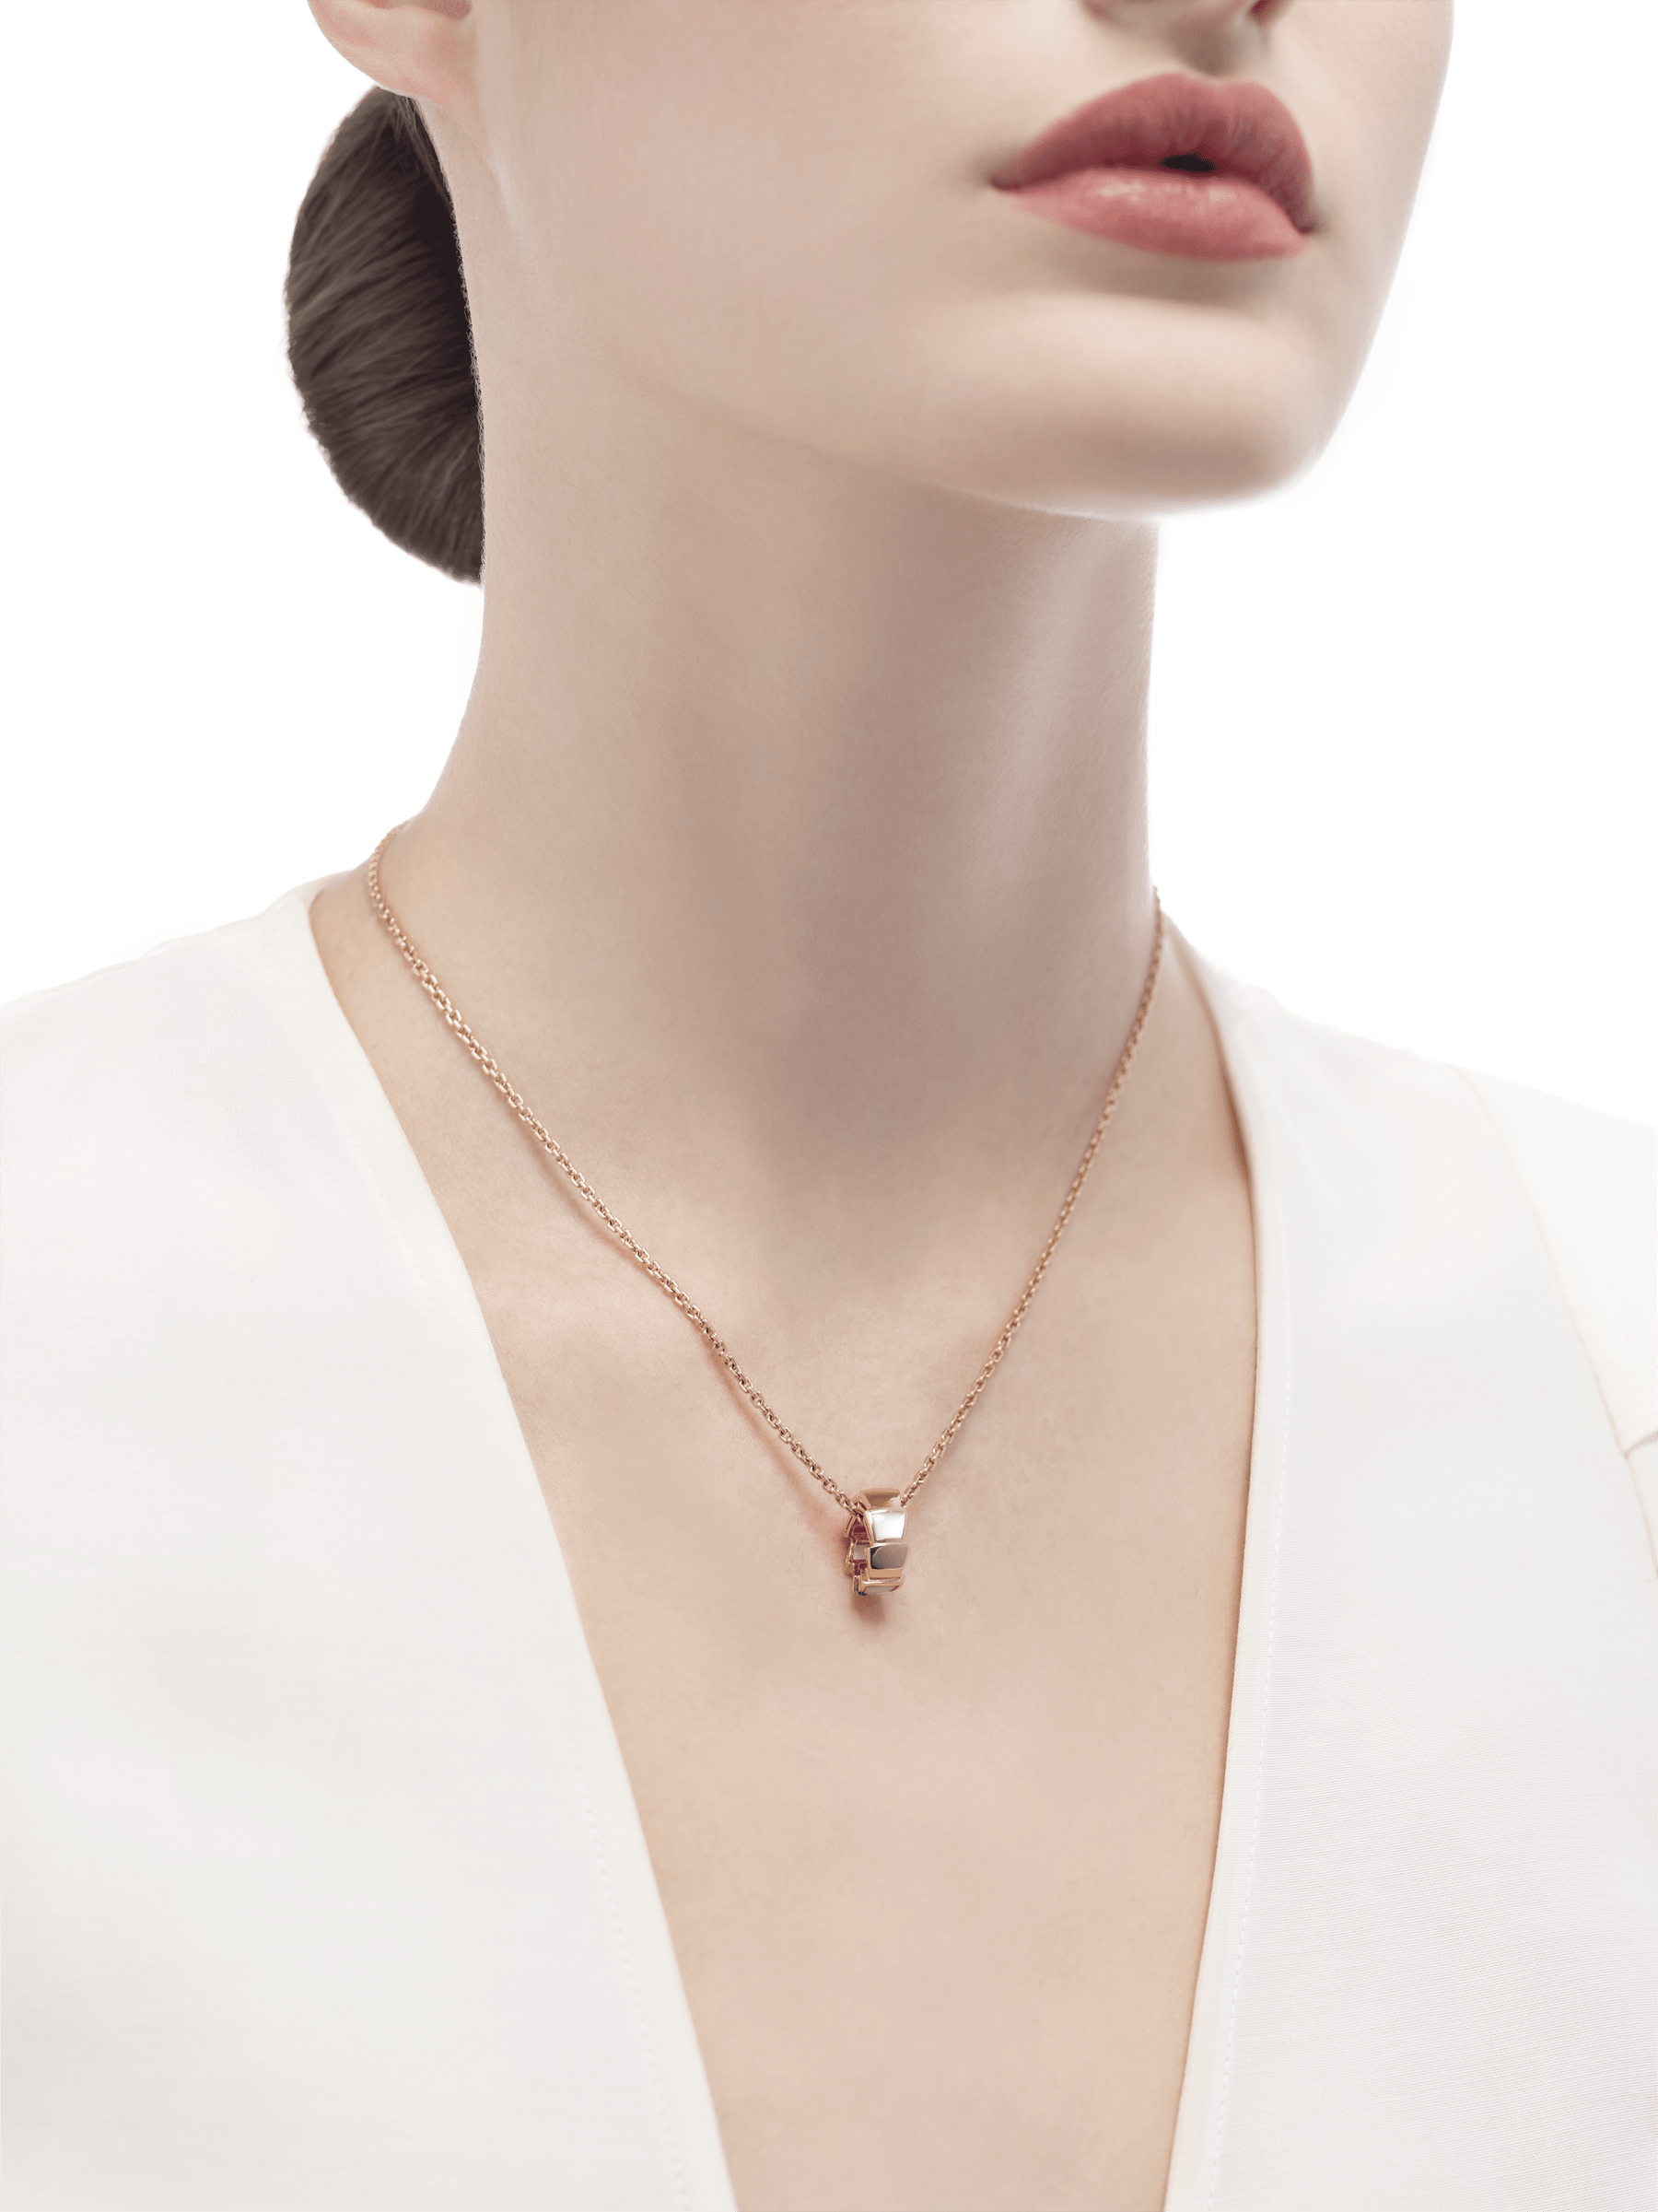 Serpenti 18 kt rose gold necklace with pendant set with mother-of-pearl elements 355795 image 4